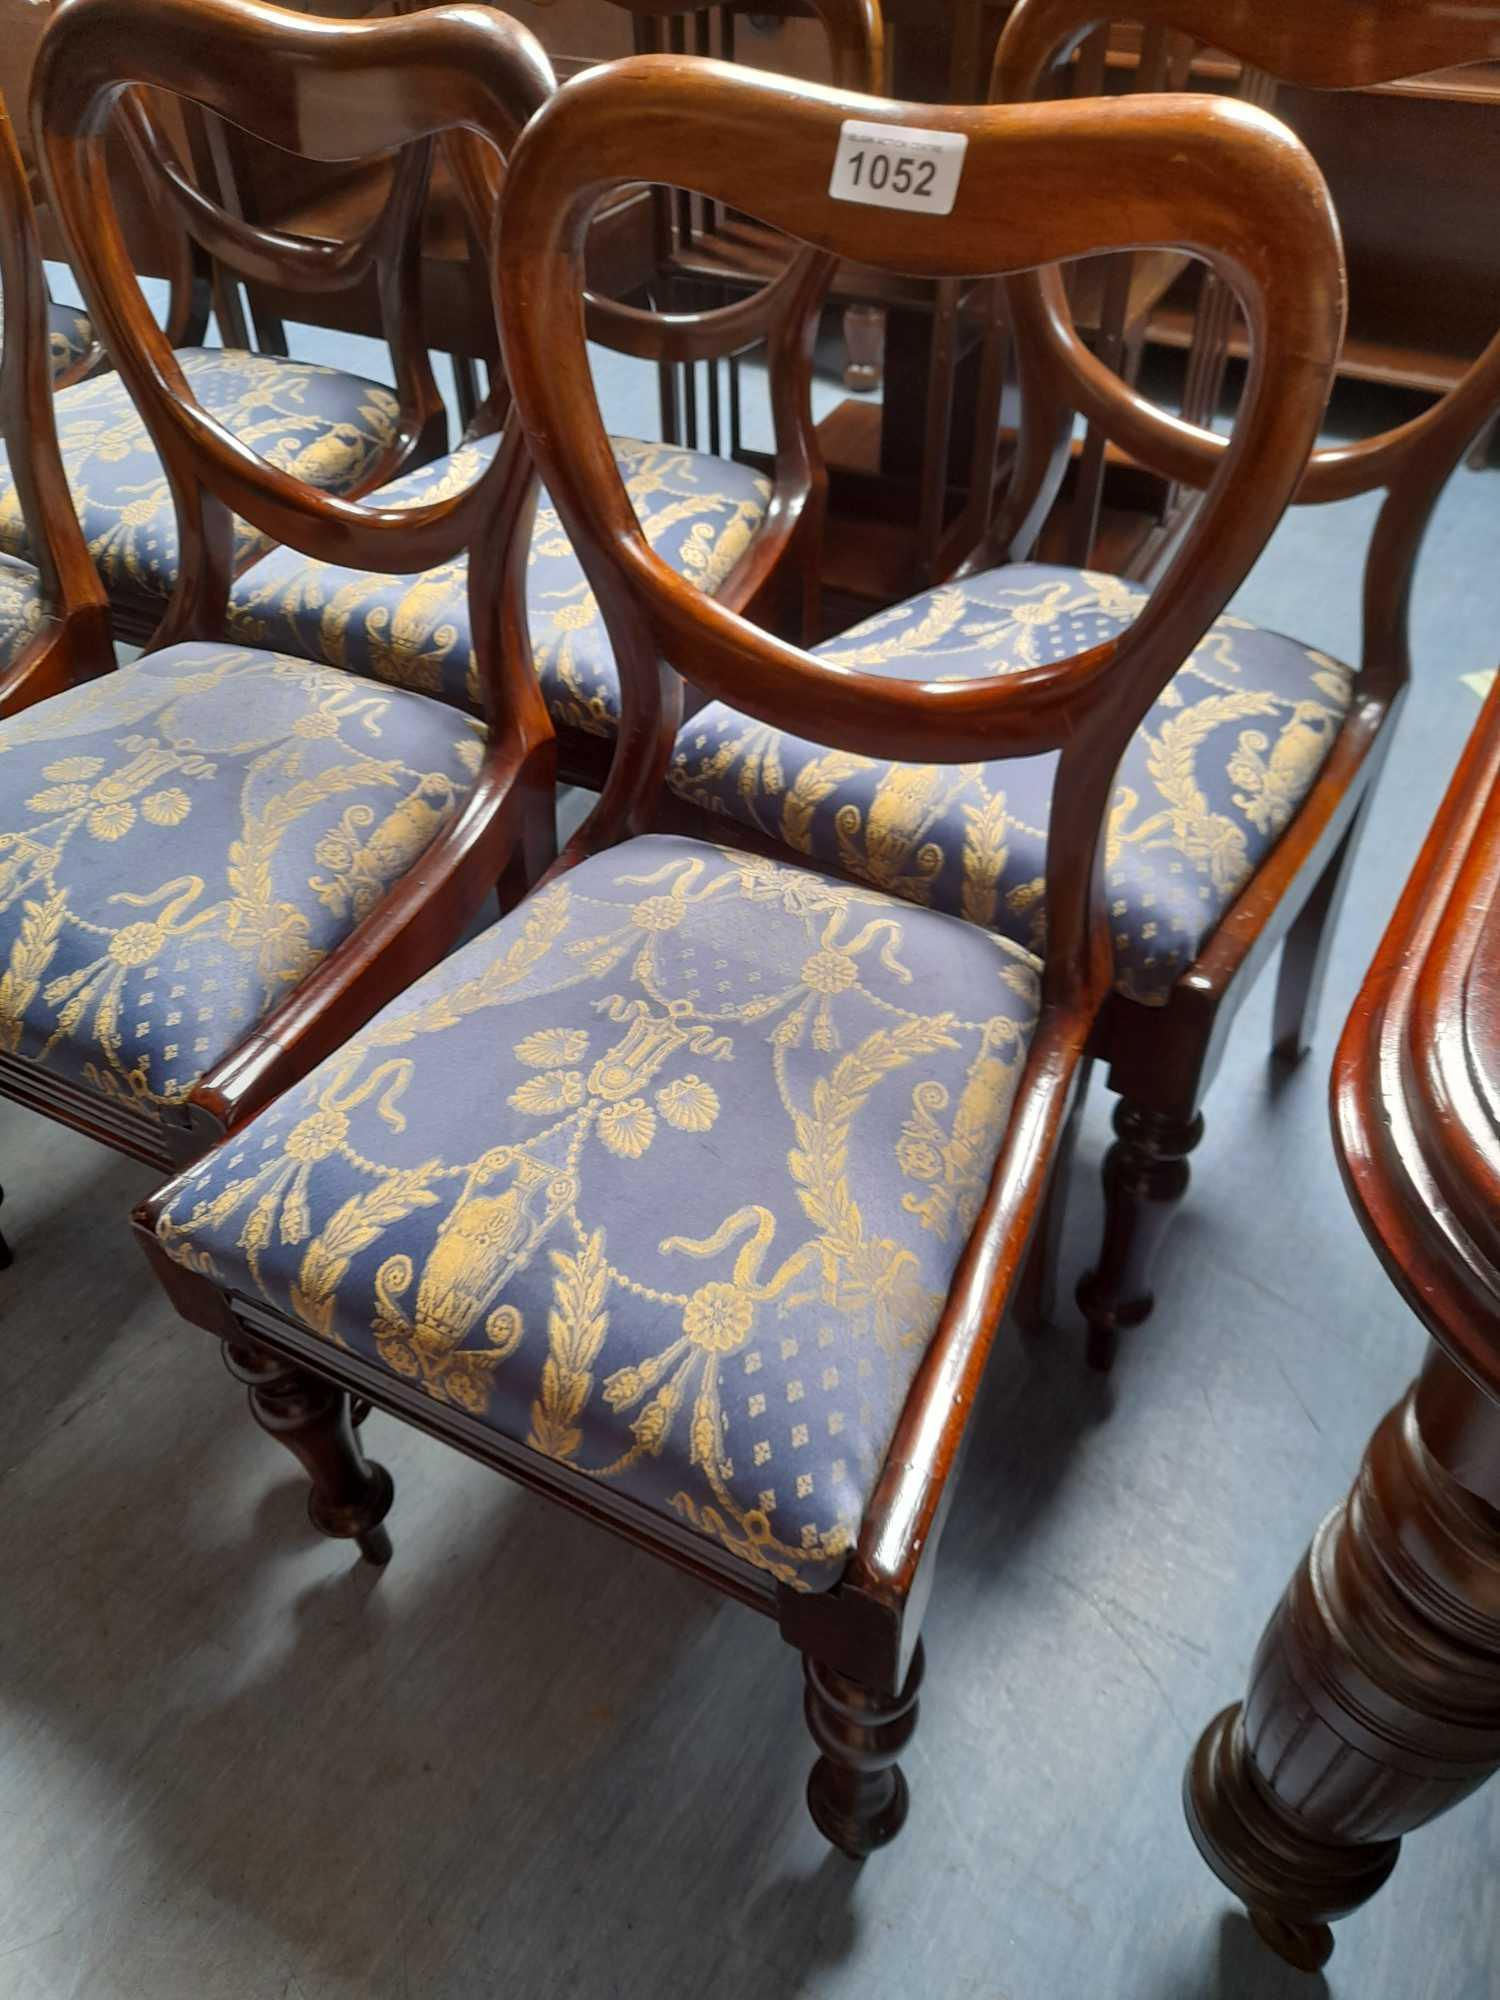 8 VICTORIAN MAHOGANY DINING CHAIRS - Image 2 of 3